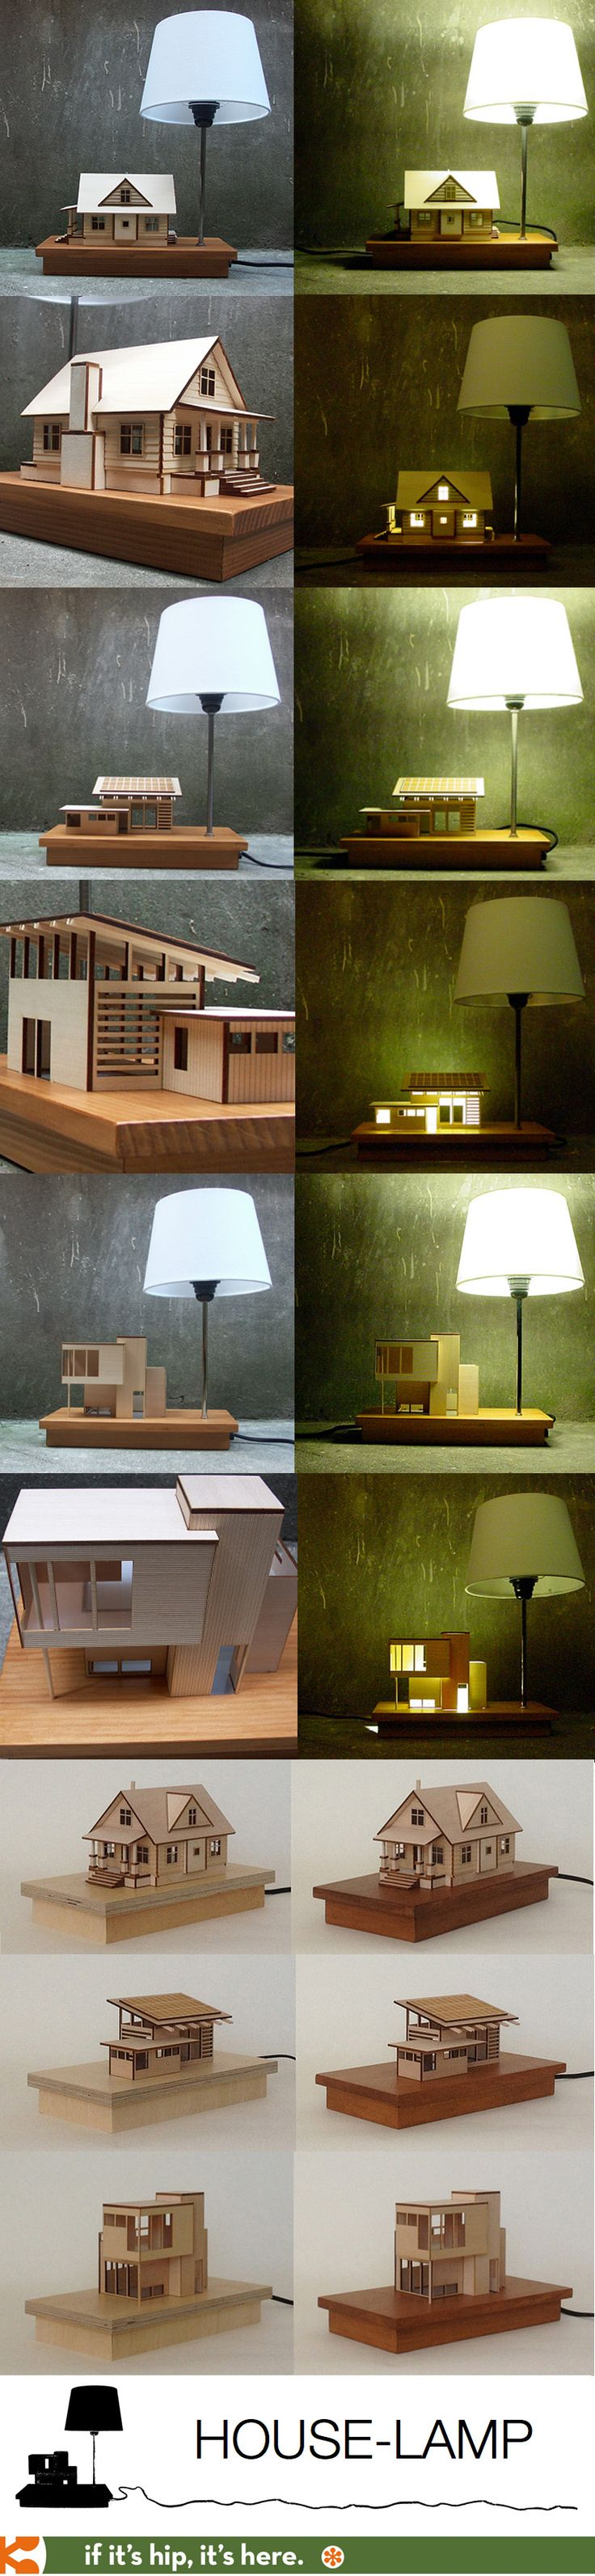 Awesome architecturally inspired lamps.